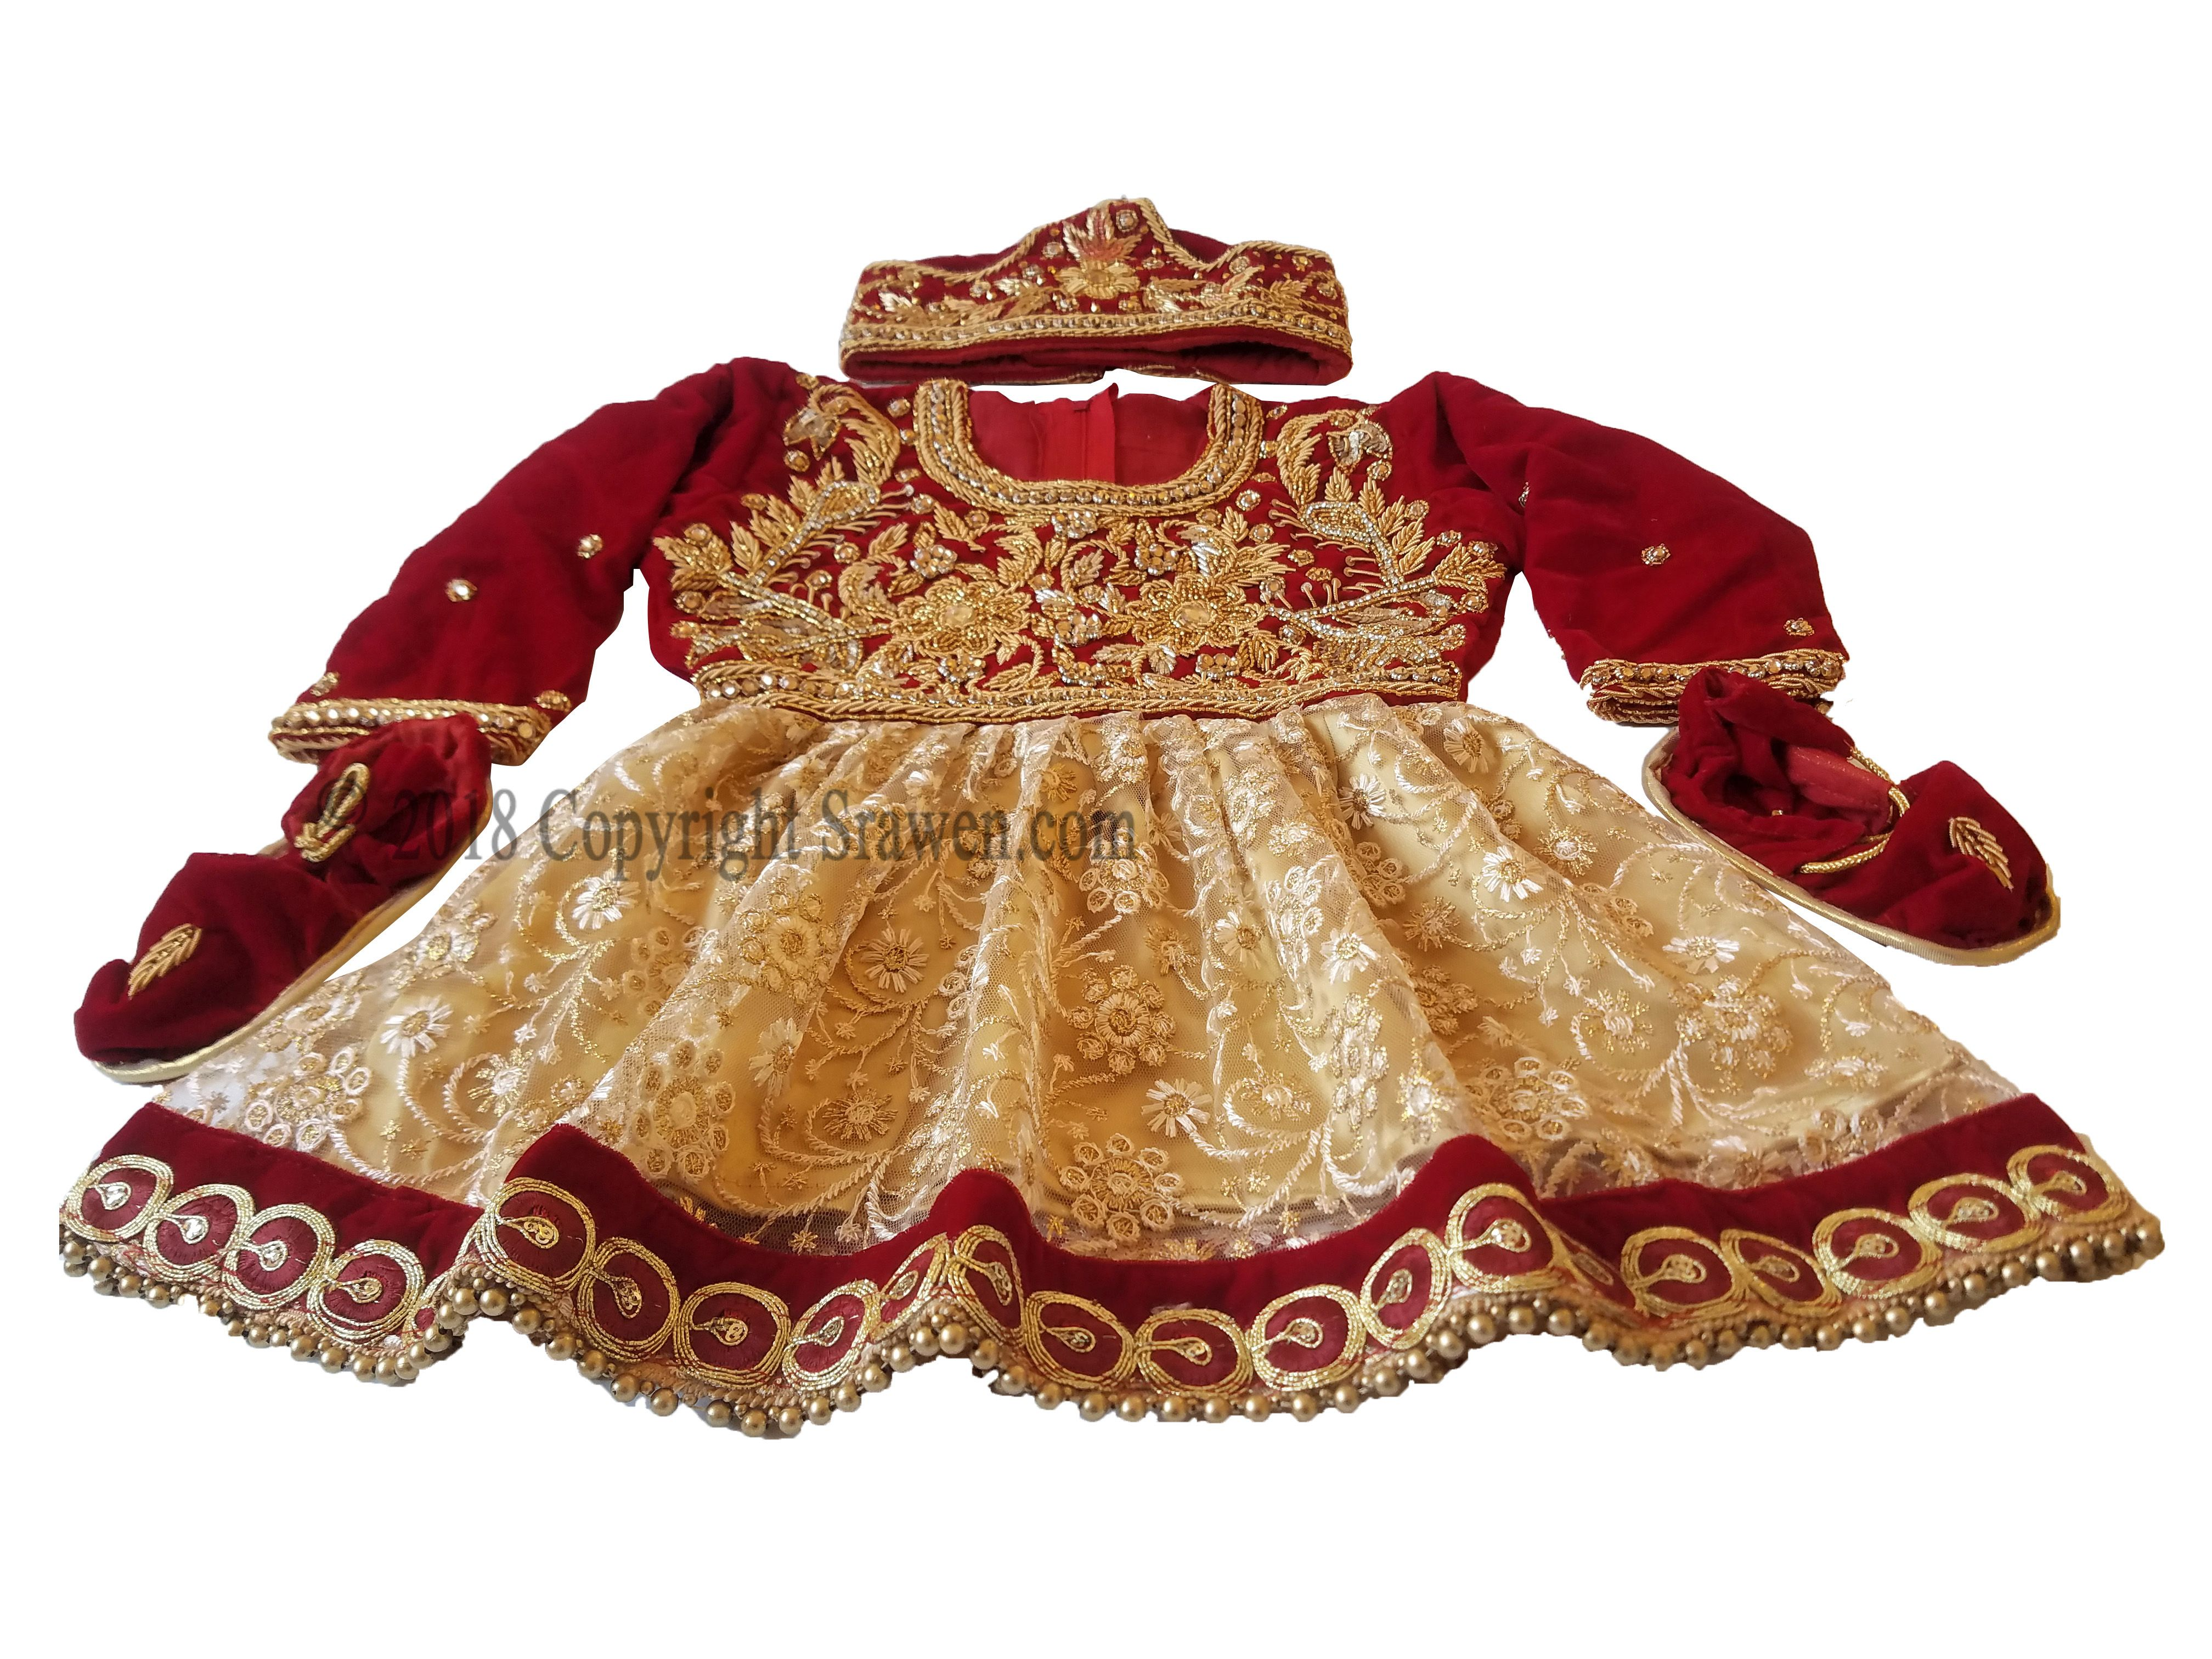 69547e3926d6 This is a 100% brand new never used red velvet pasni dress for new born  babies for their special rice feeding ceremony that marks their 6 months.